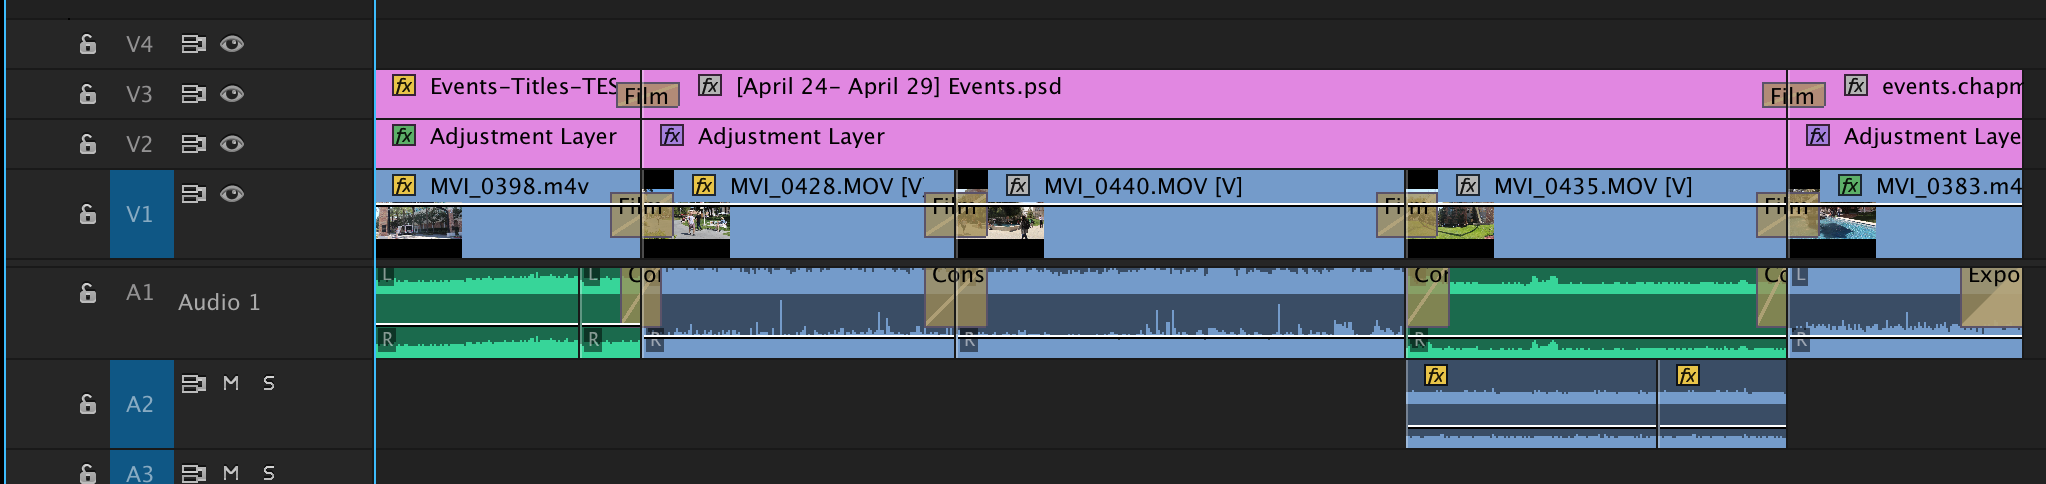 Video files in the Adobe Premiere Timeline